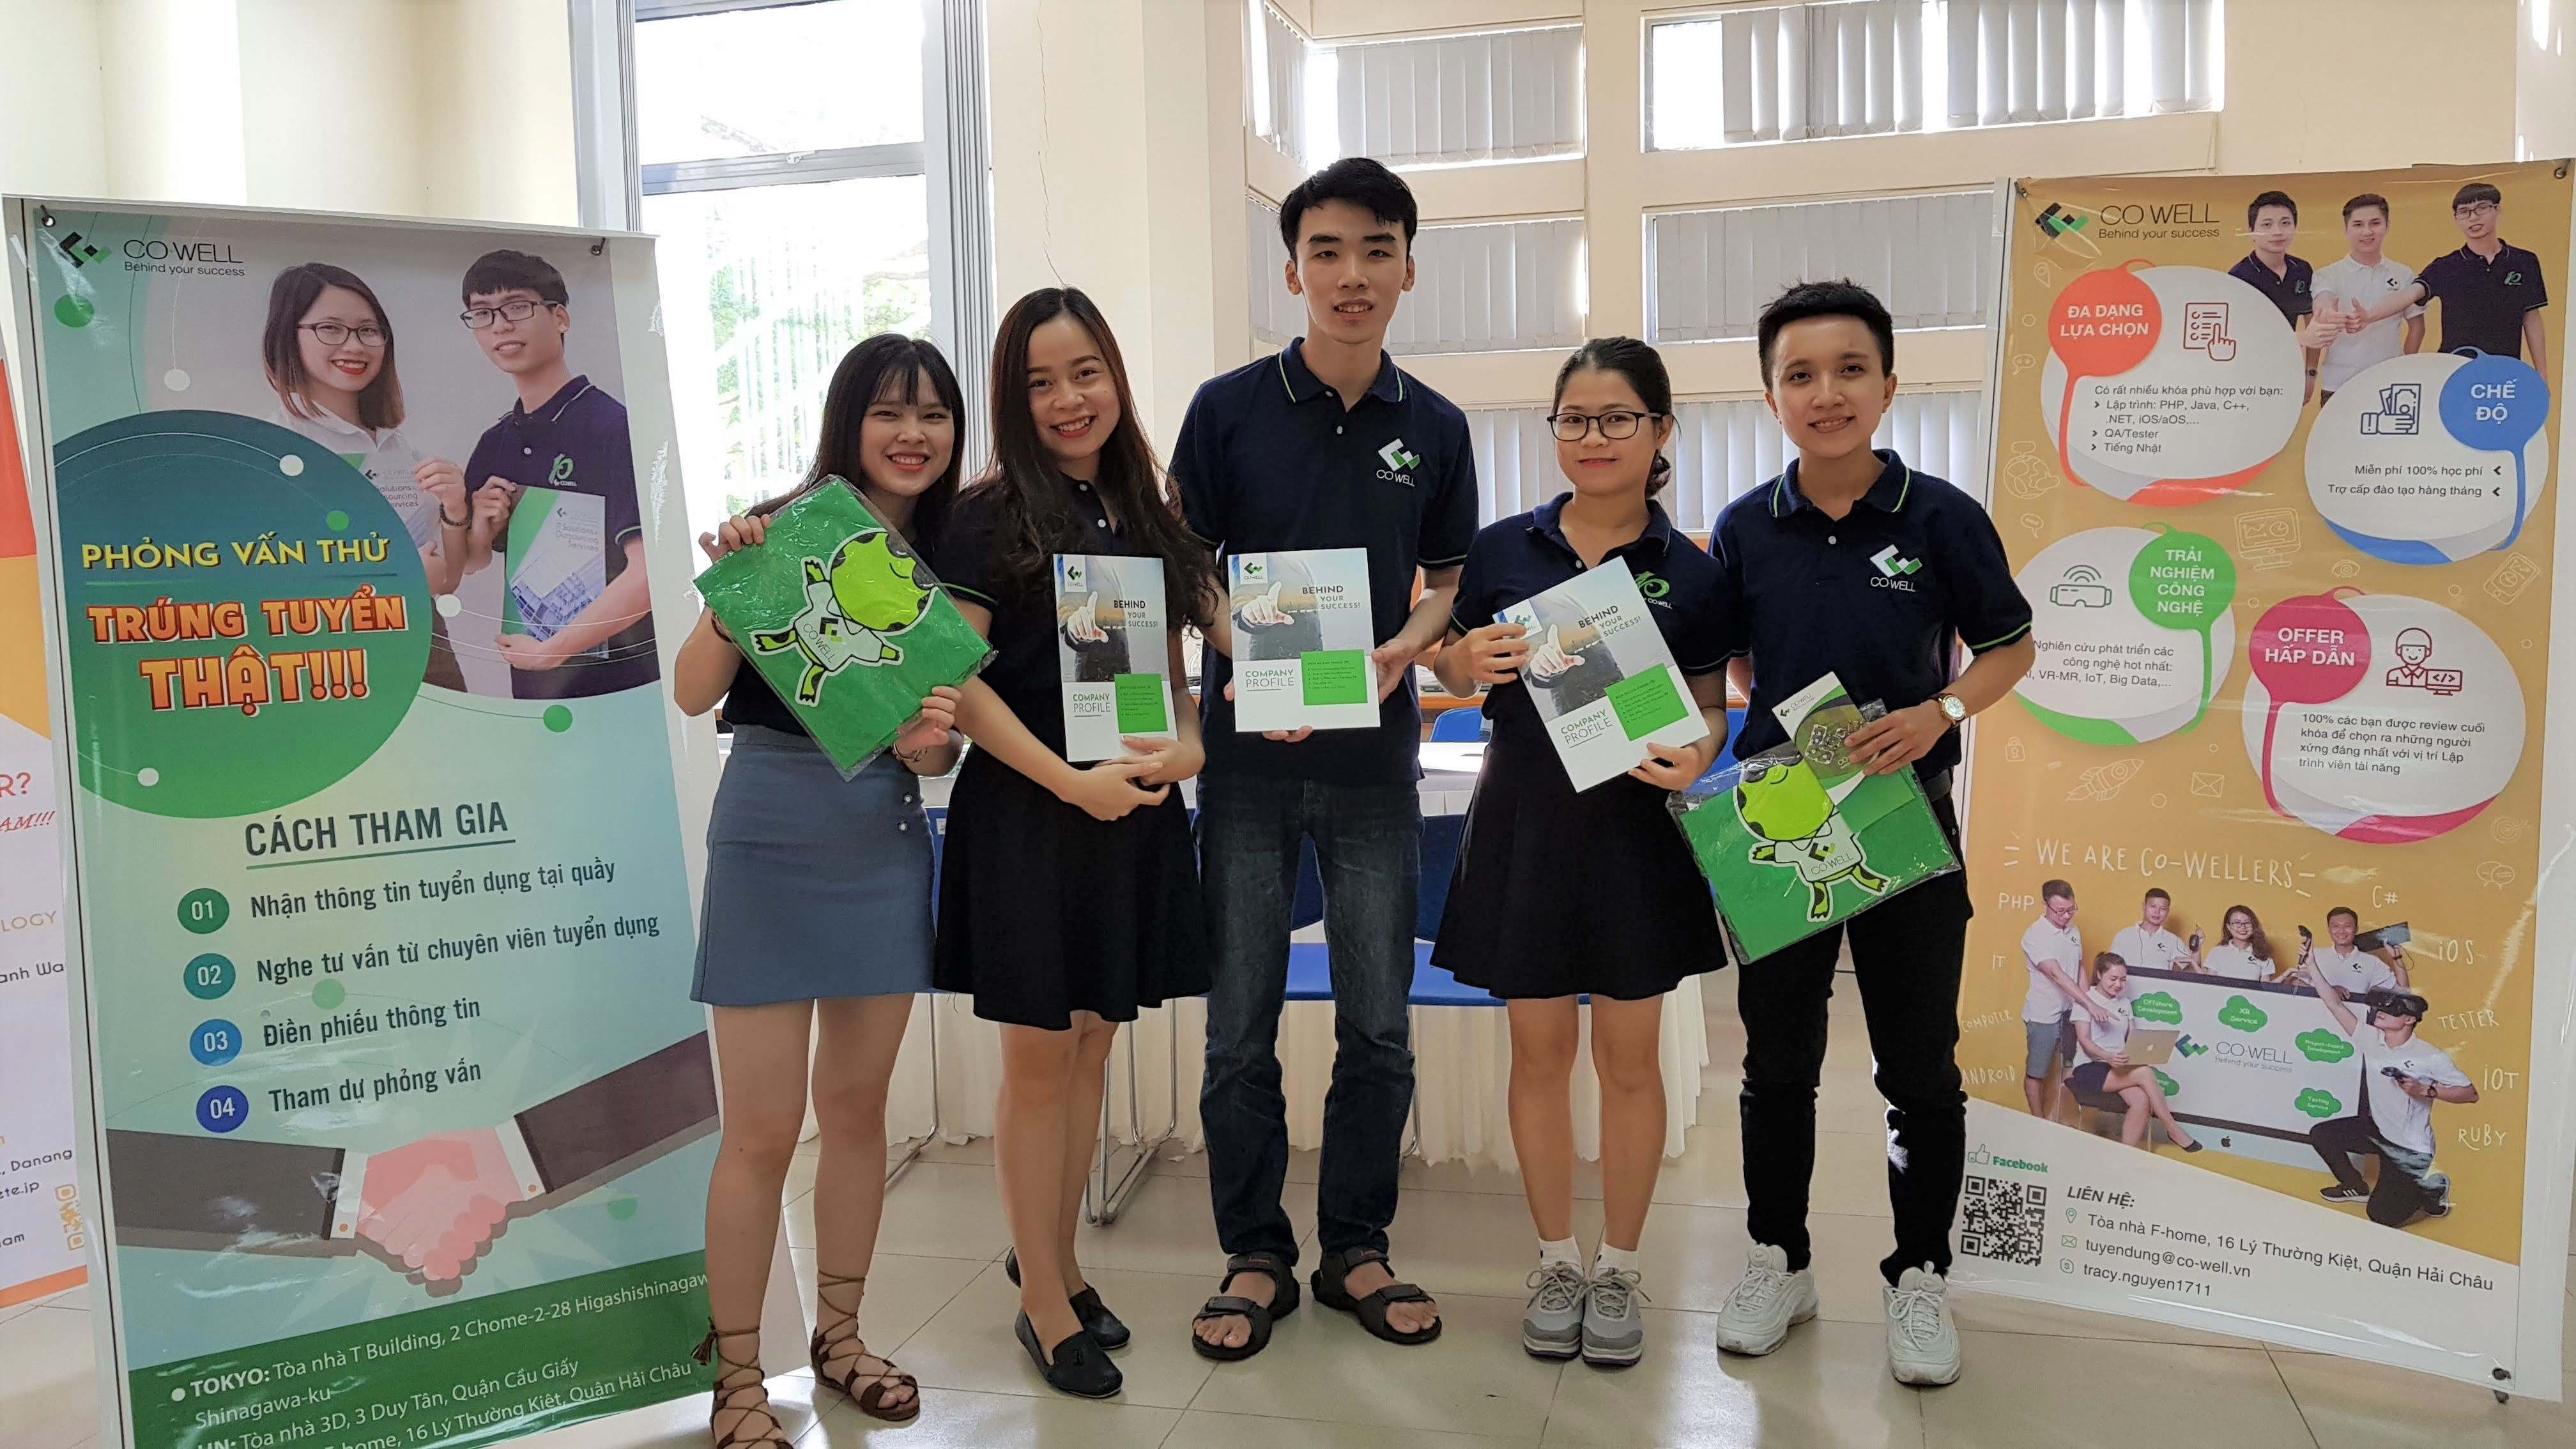 CO-WELL AT IT JOB FAIR 2018 – UNIVERSITY OF SCIENCE AND TECHNOLOGY DANANG